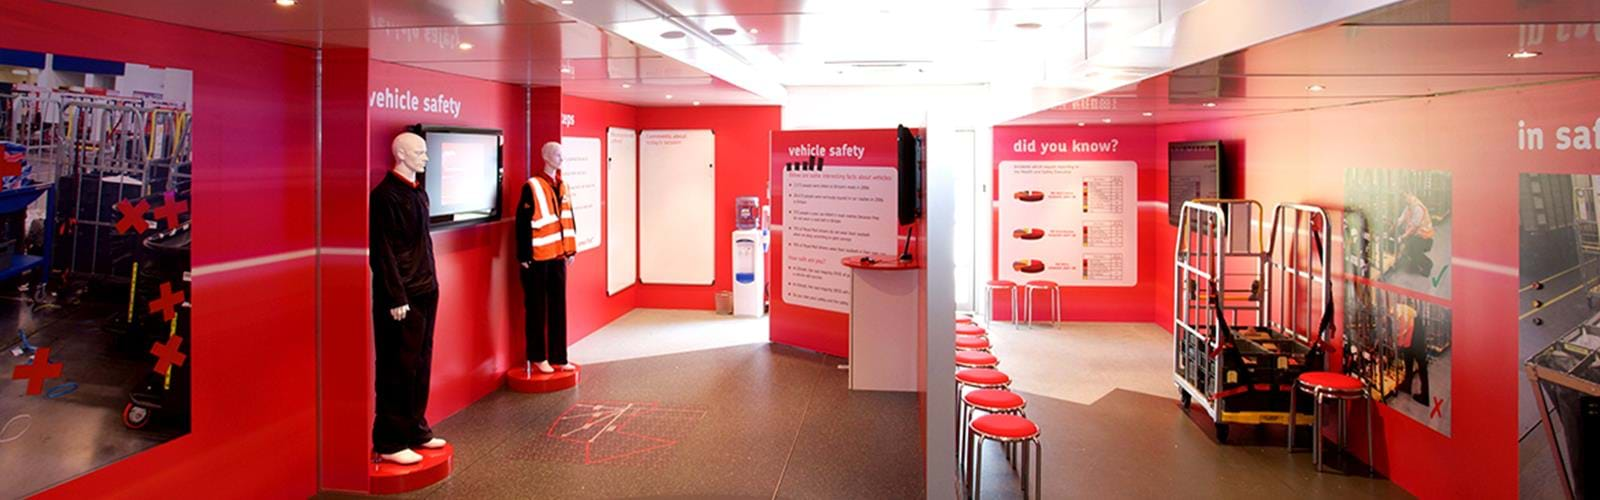 Royal Mail Exhibition Trailer S6